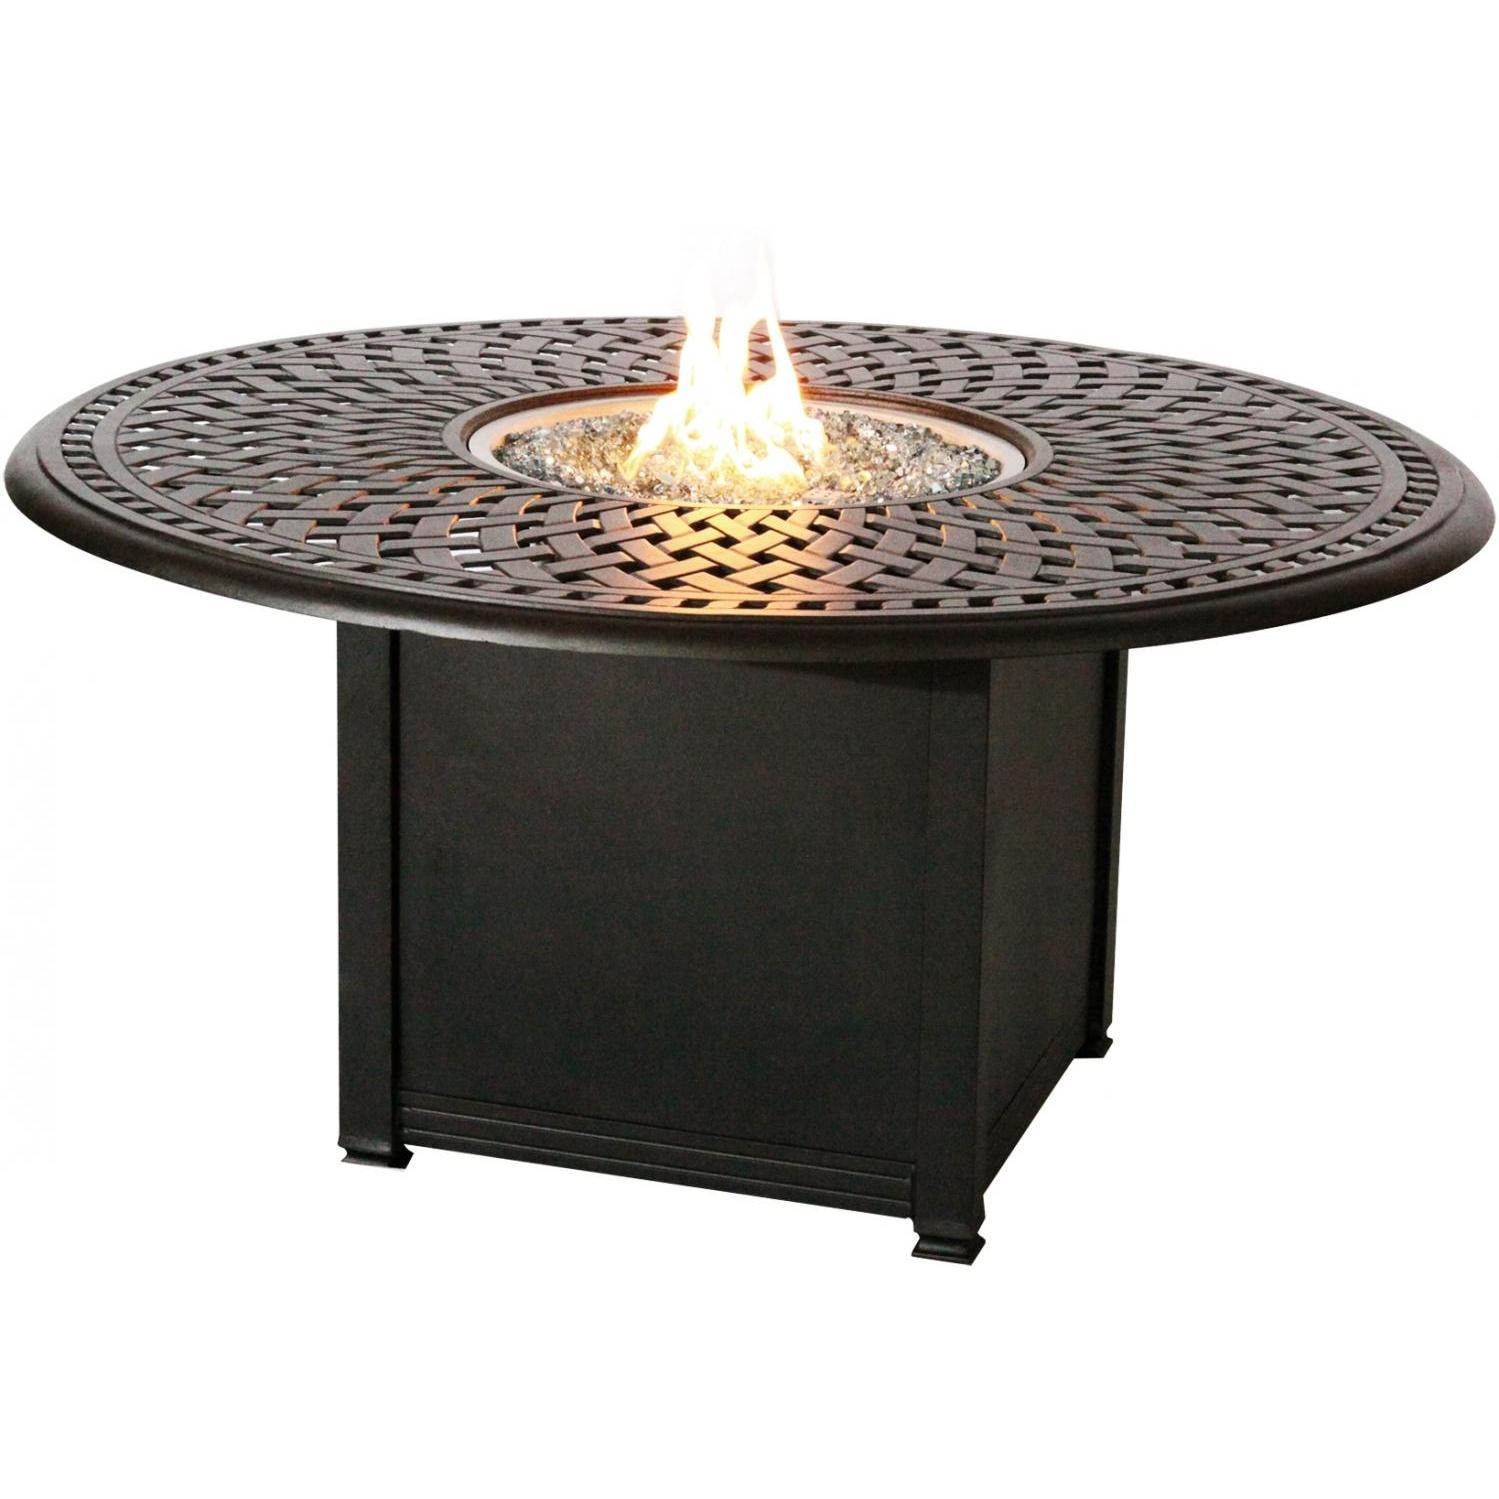 Signature 60 Inch Propane Fire Pit Dining Table By Darlee Antique Bronze Bbqguys Fire Pit Dining Set Propane Fire Pit Table Fire Pit Table